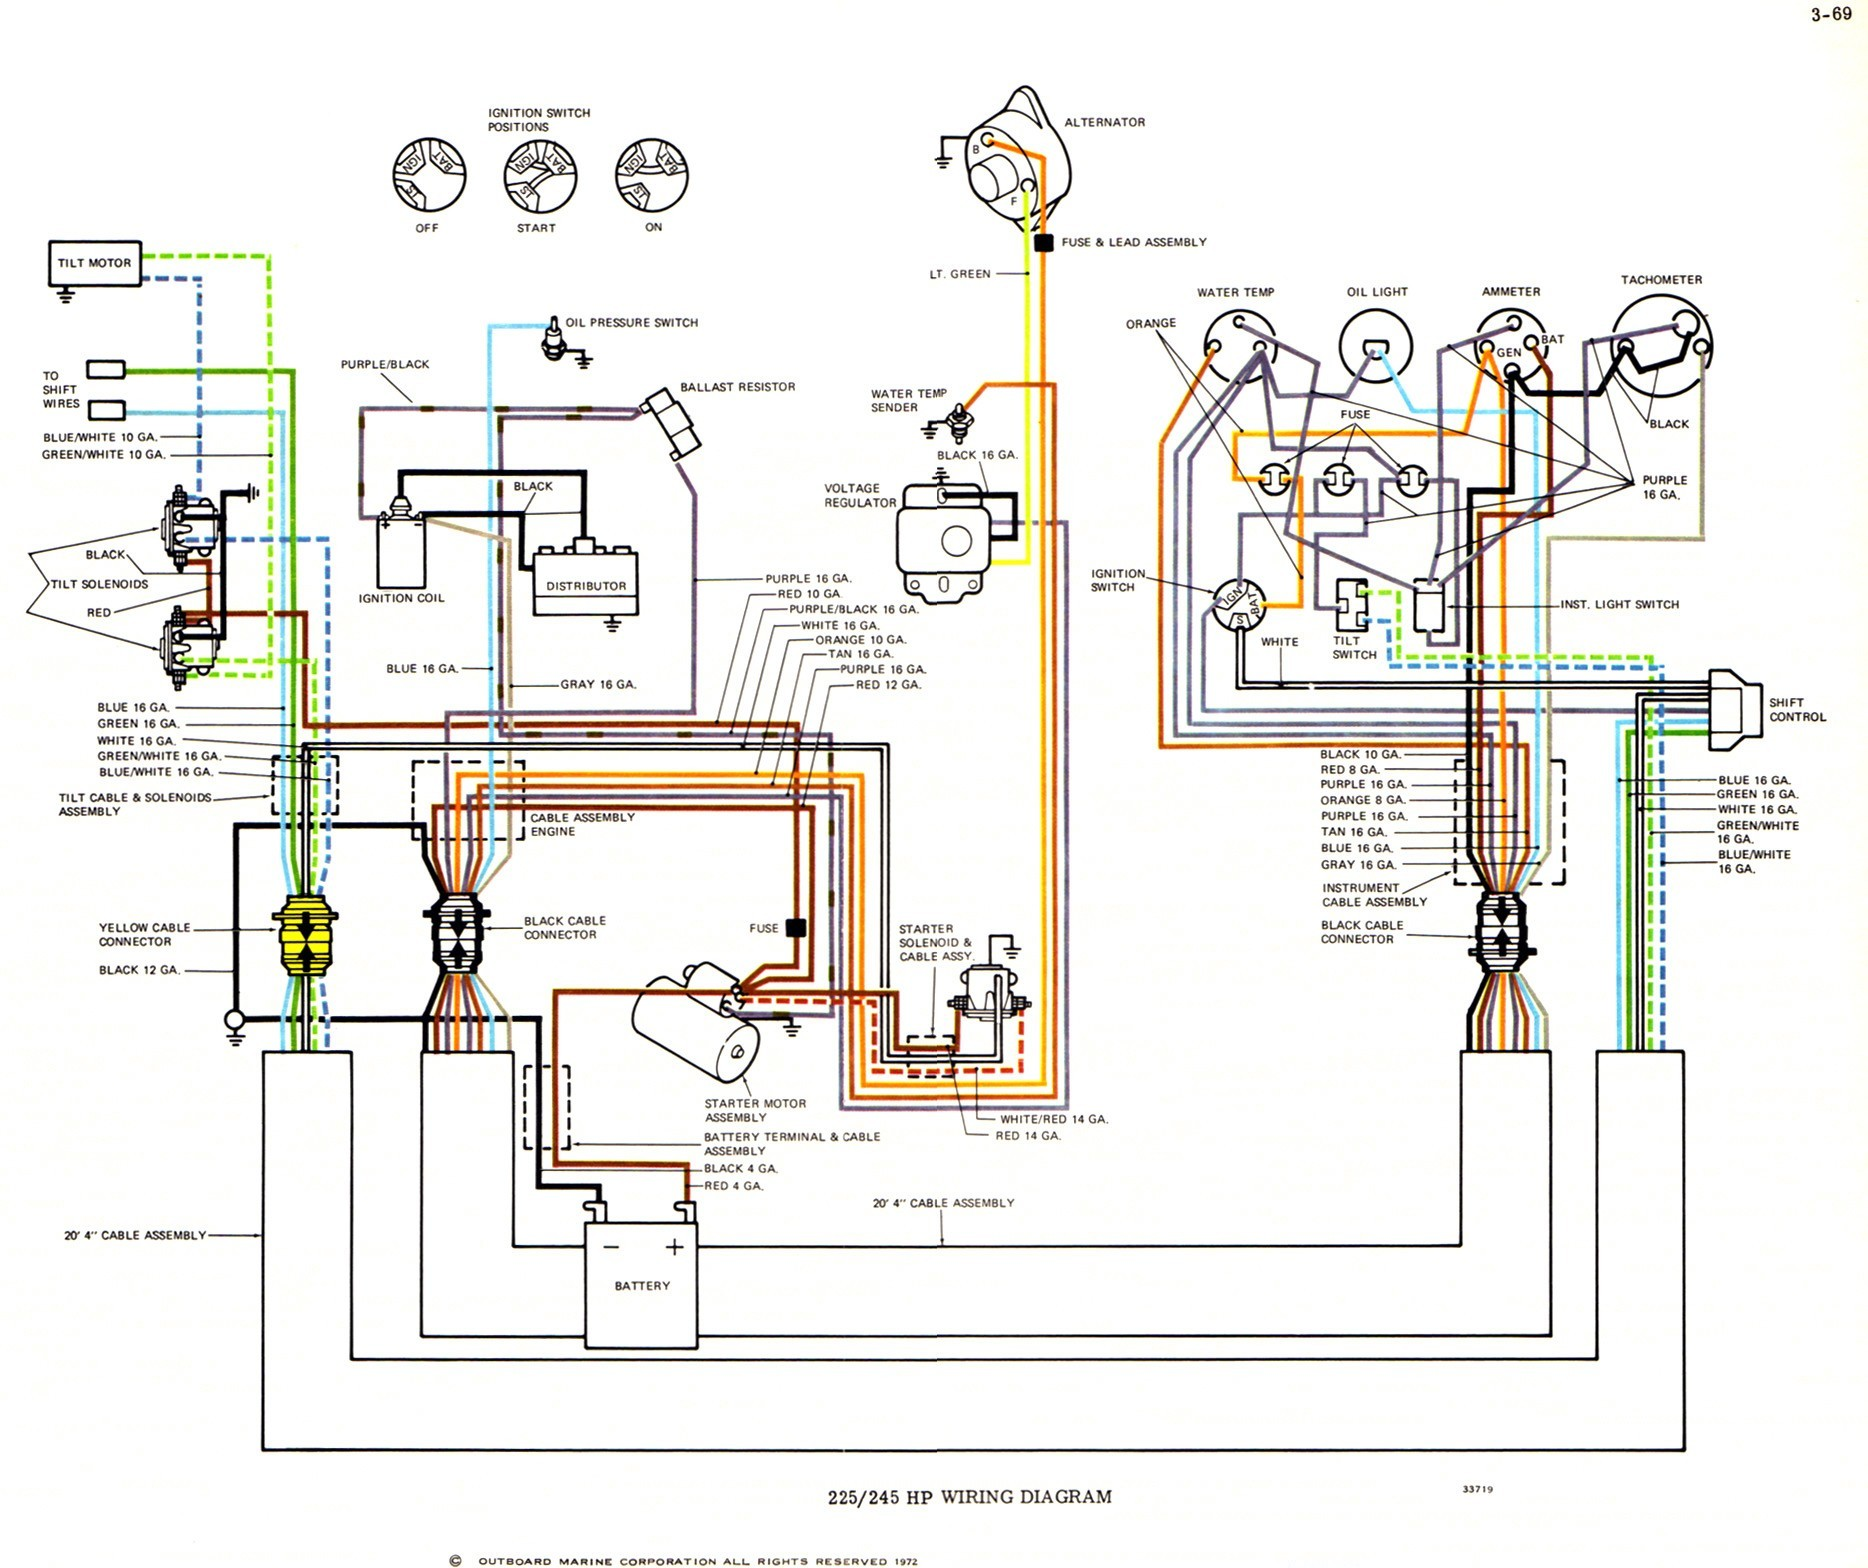 Mercruiser 140 Engine Diagram Cobra Omc Wiring Diagram Layout Wiring Diagrams • Of Mercruiser 140 Engine Diagram